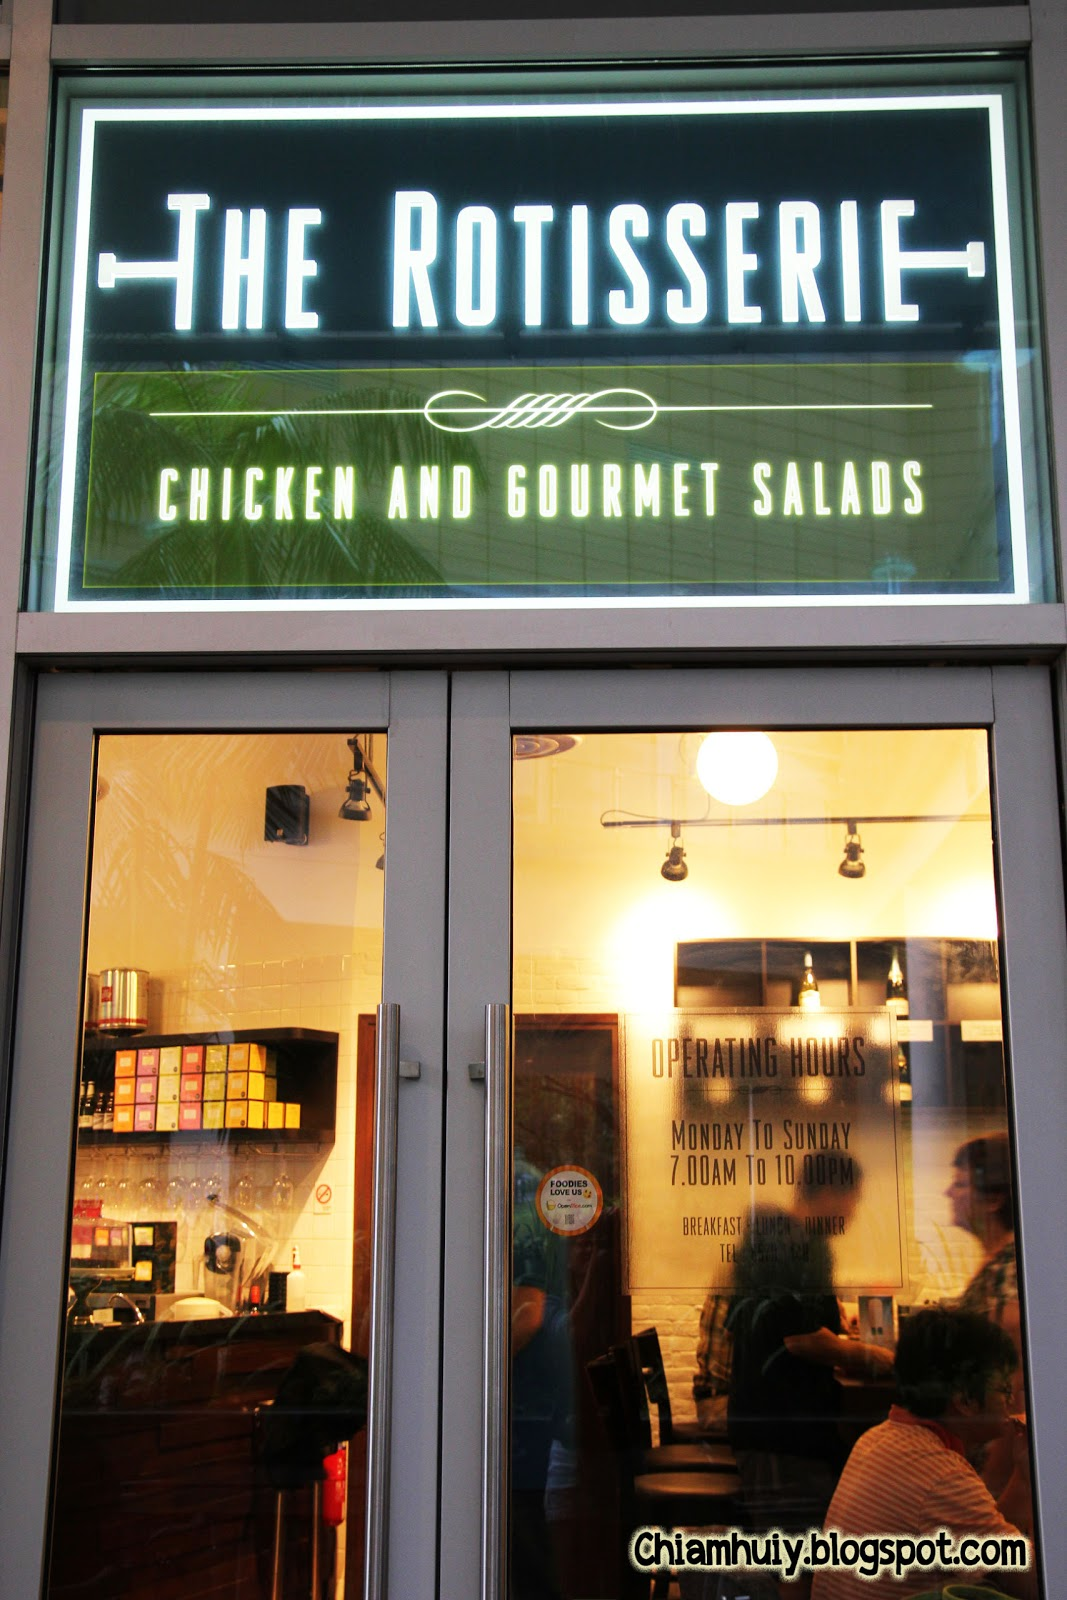 The rotisserie review